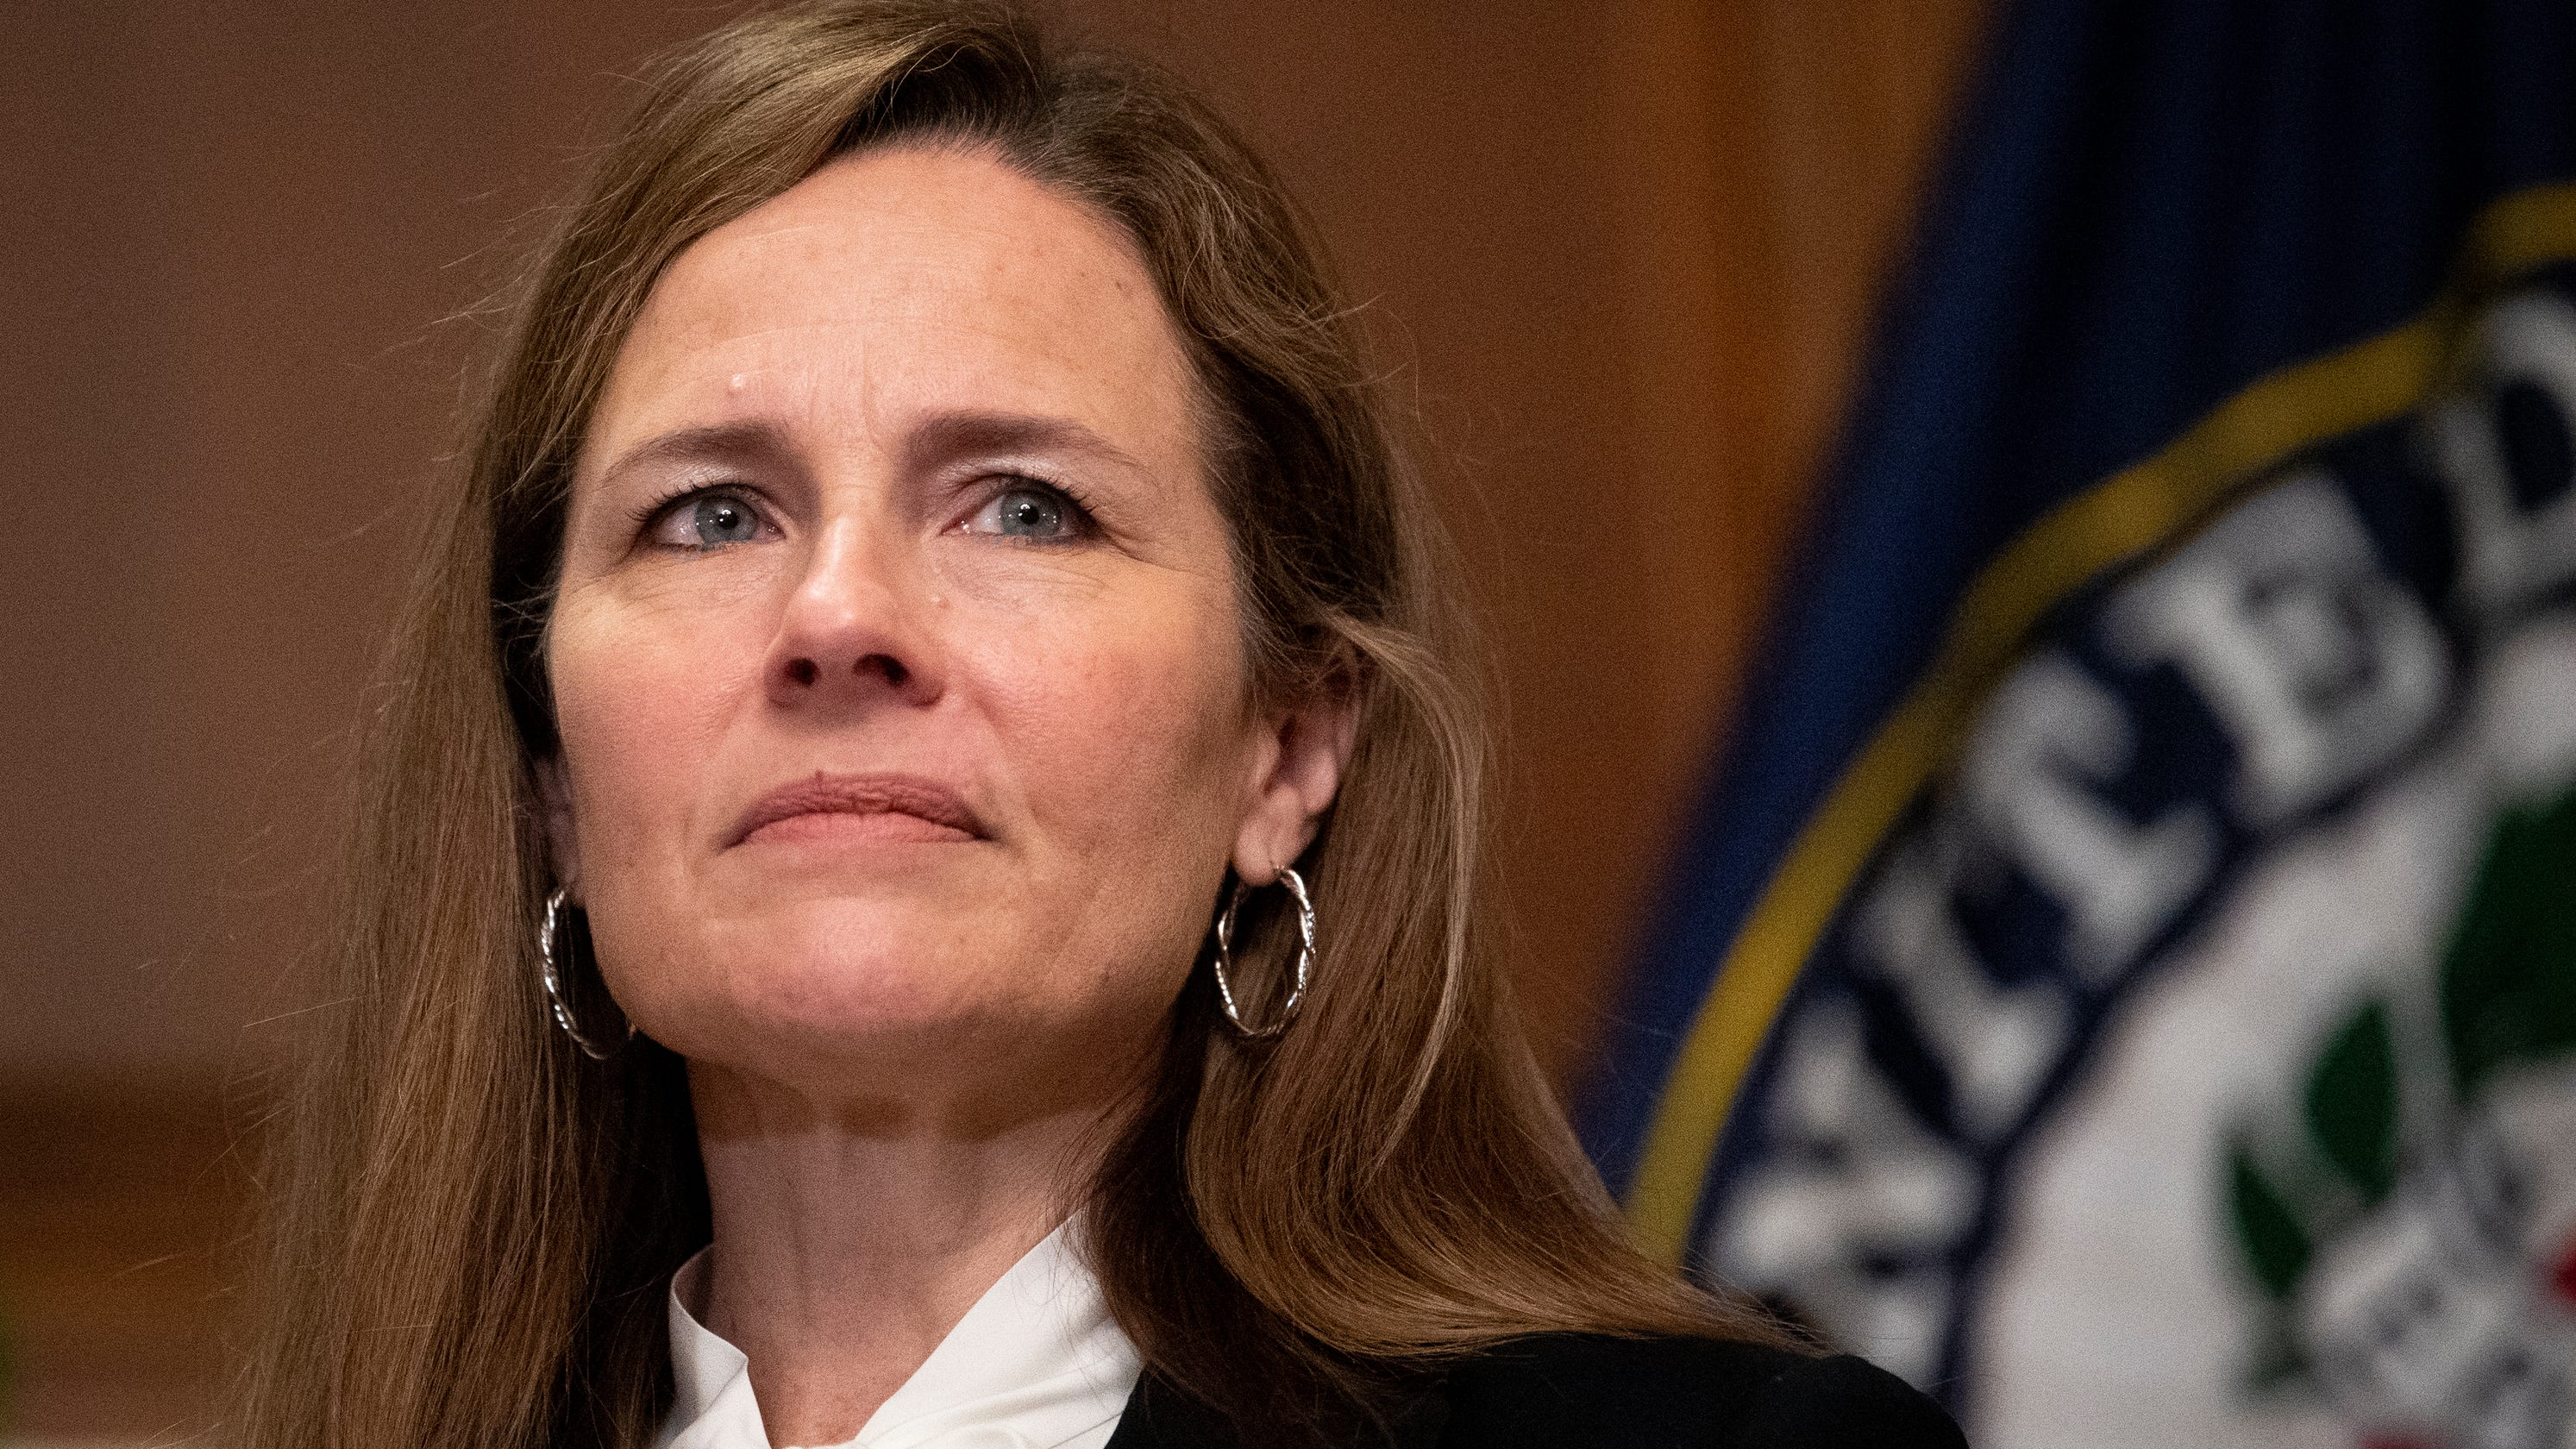 Survivors of sexual violence deserve a better Supreme Court justice than Amy Coney Barrett